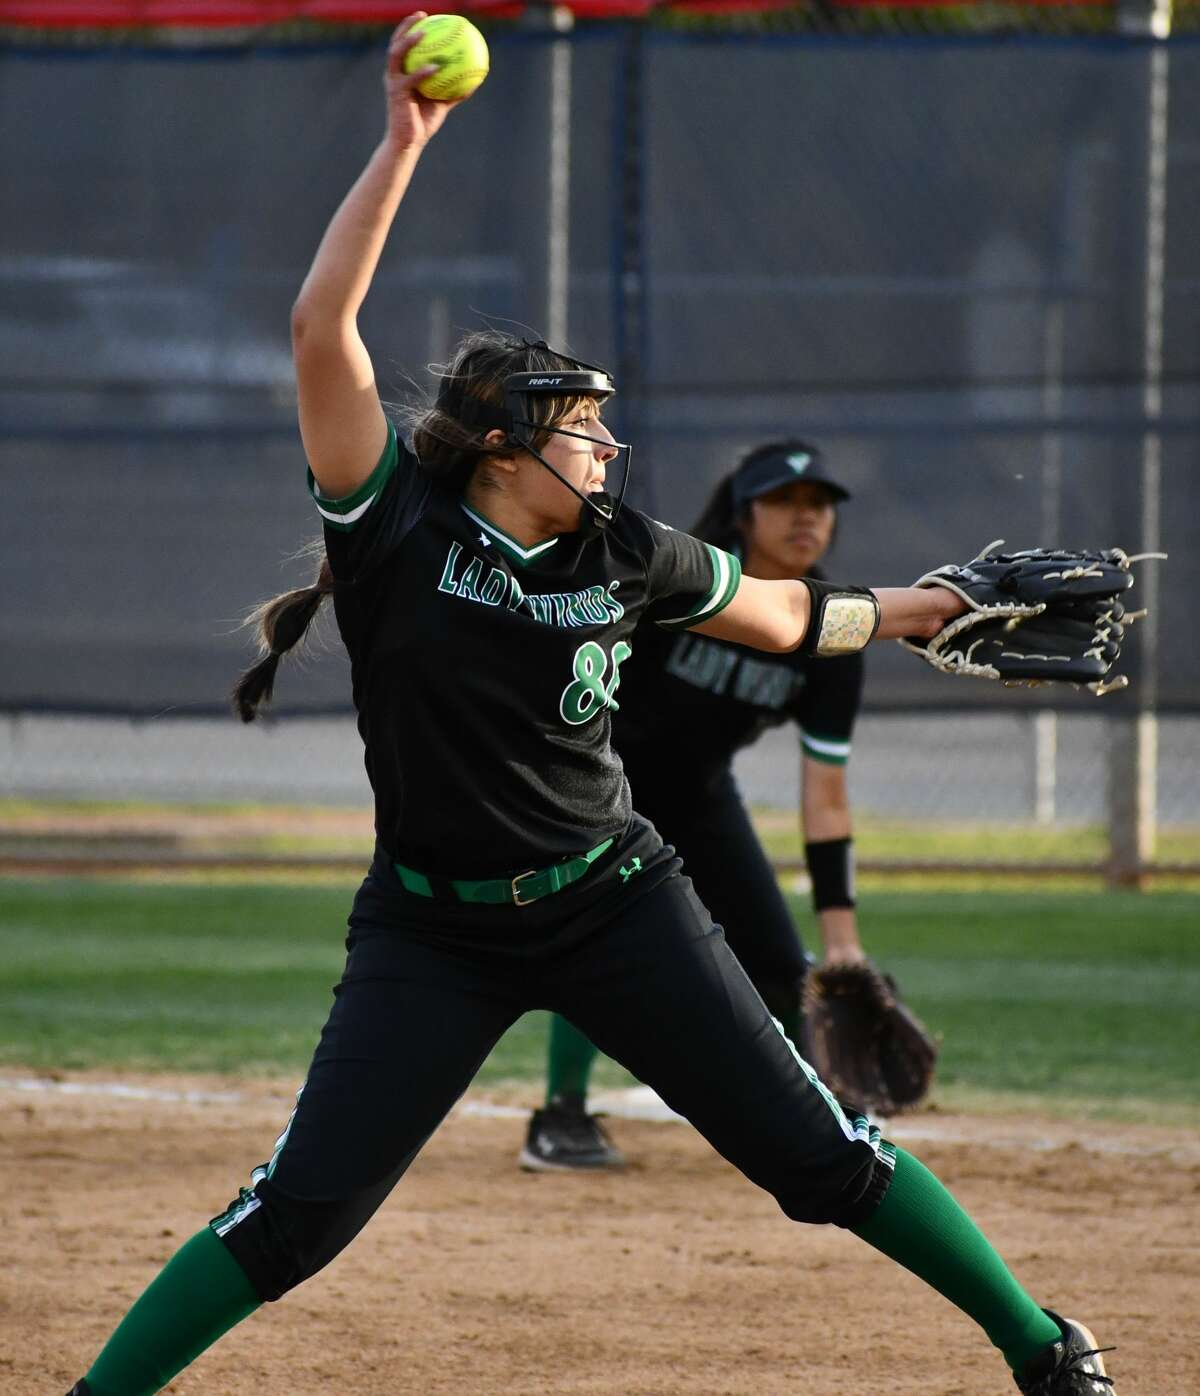 Floydada junior pitcher Erin Trevino was named second team All-State by the Texas Sports Writers Association.